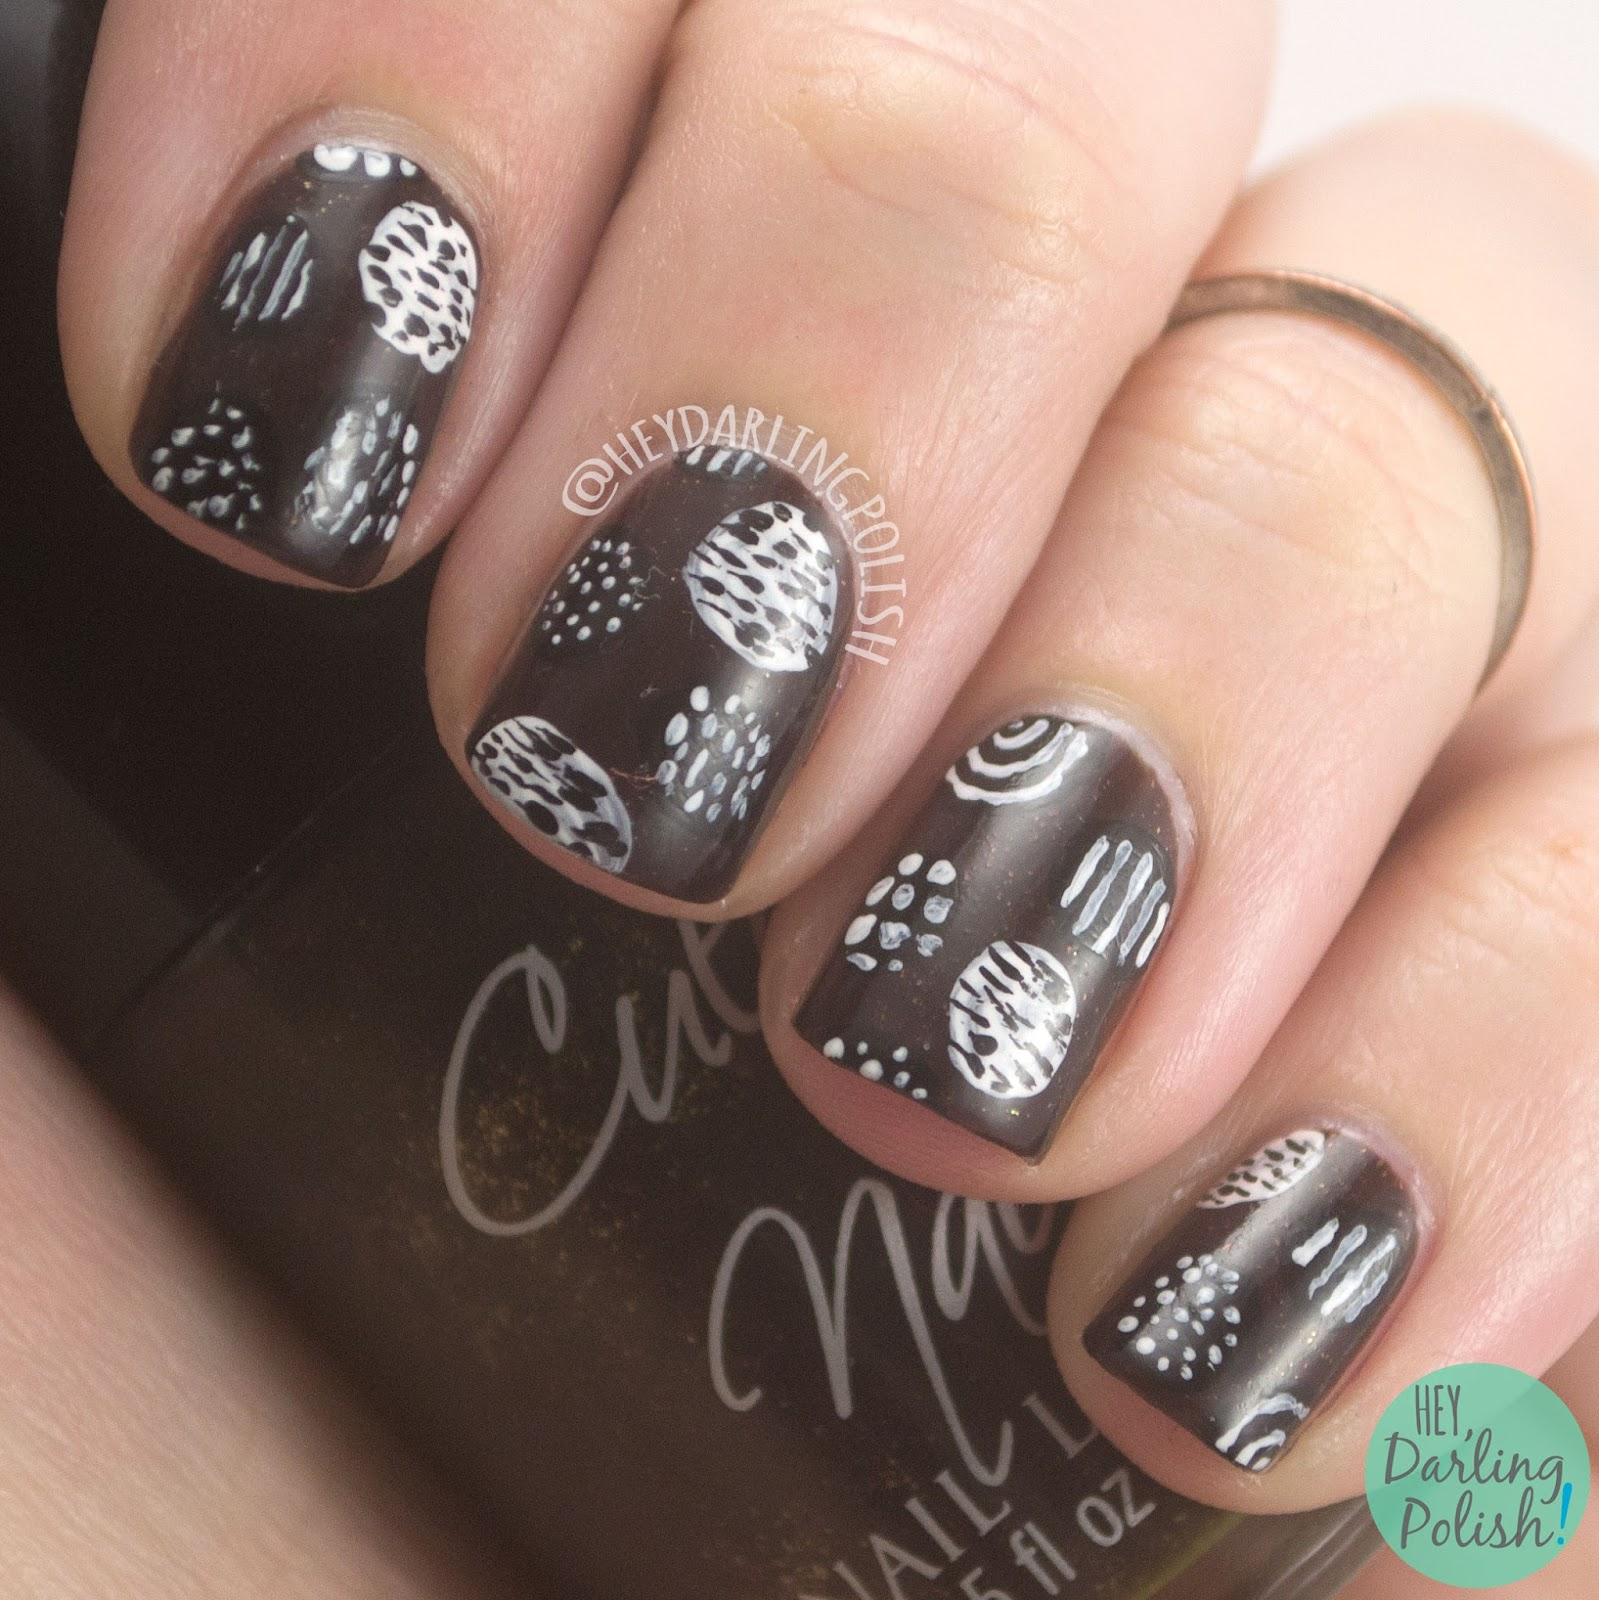 nails, nail art, nail polish, dots, brown, black, white, pattern, hey darling polish, the nail challenge collaborative,